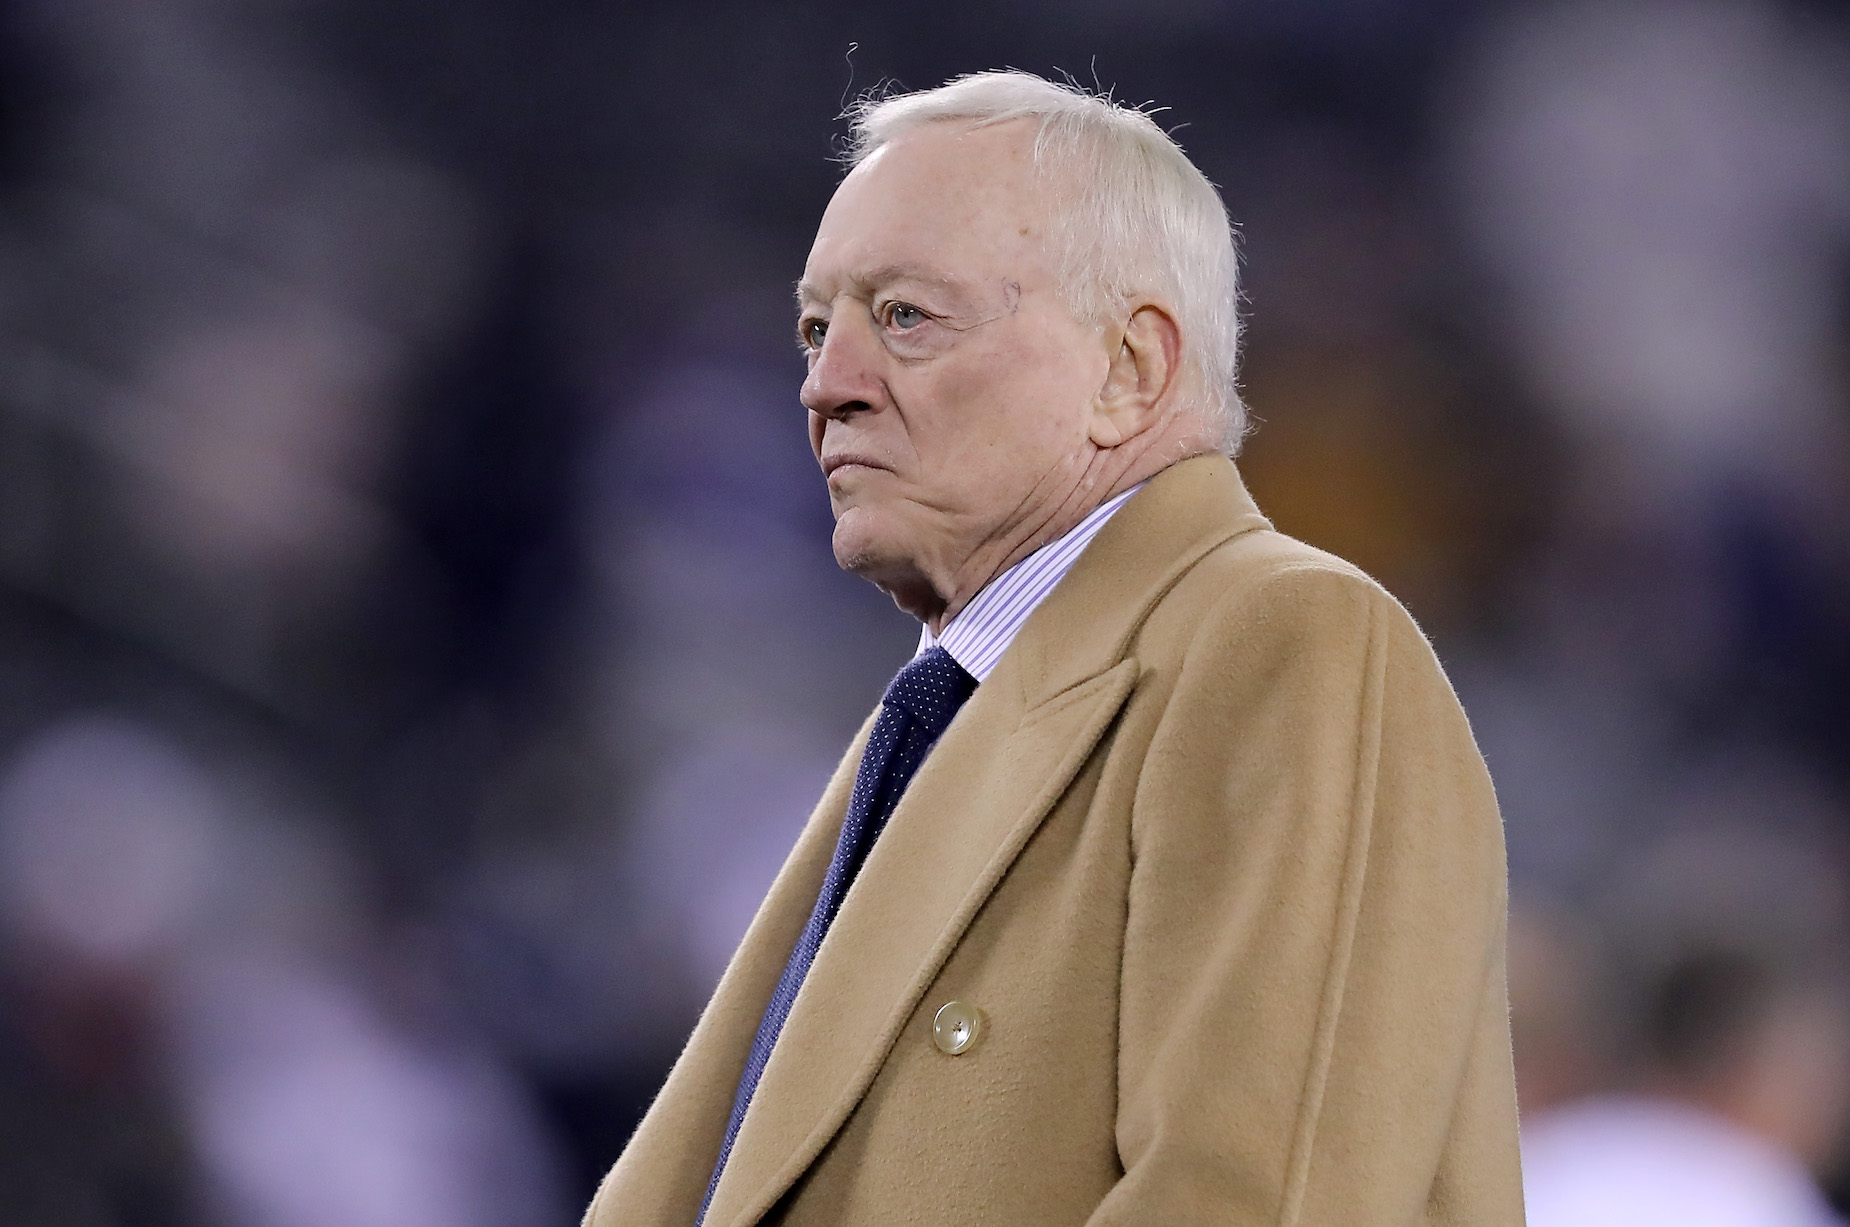 On Election Day, Jerry Jones' name was invoked to inspire Philadelphians to vote against Donald Trump.